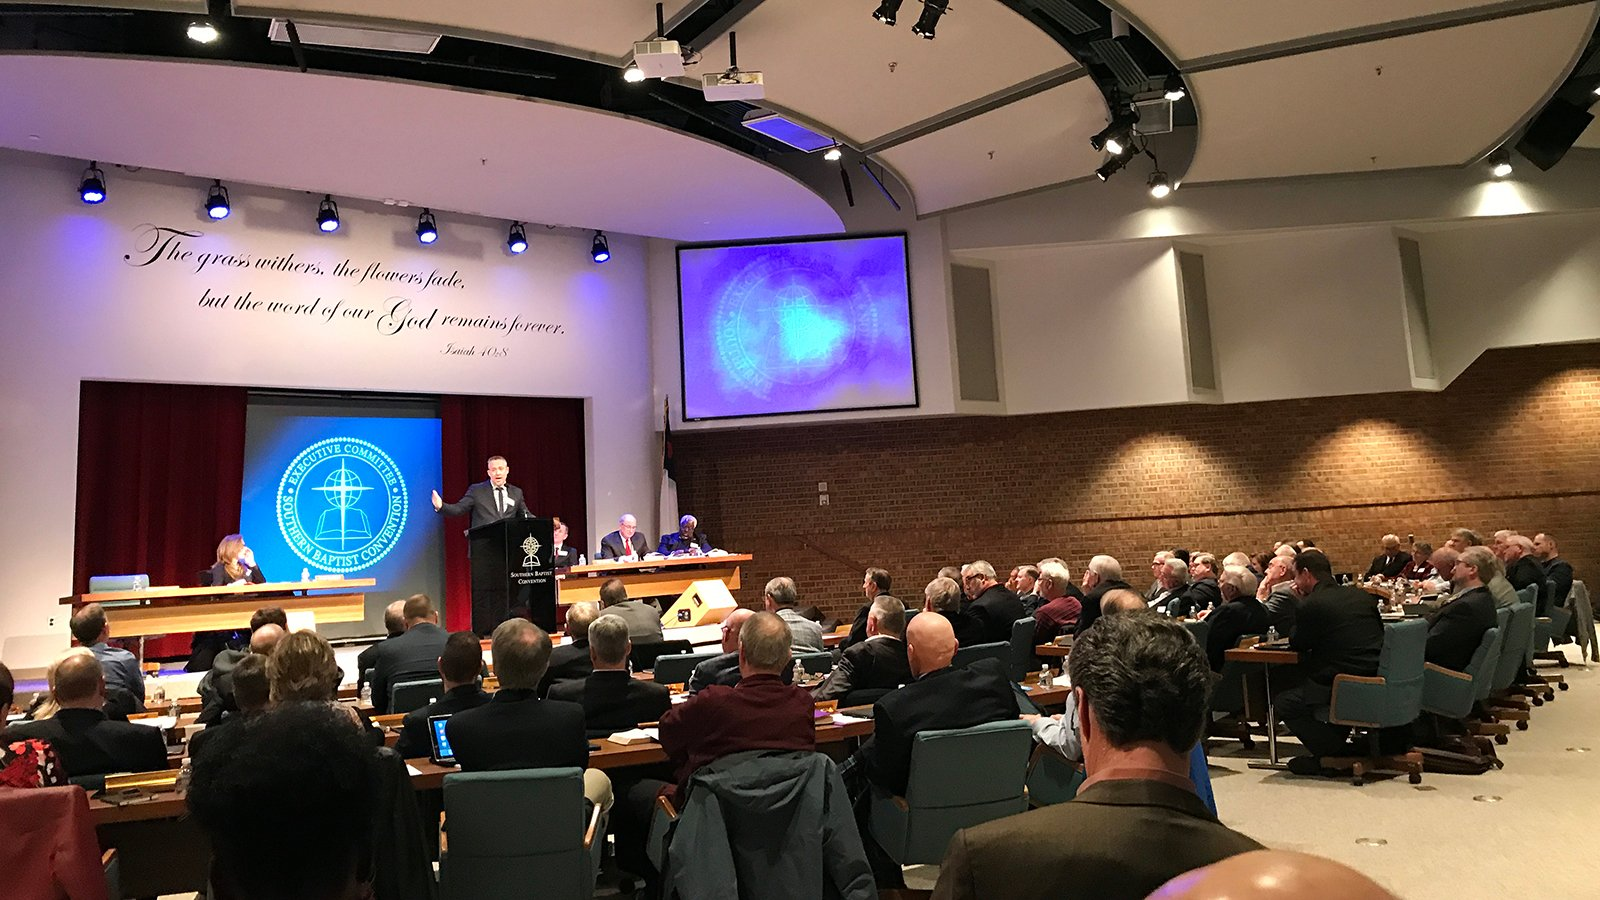 SBC Executive Committee Delays Decision on Waiving Attorney-Client Privilege in Sex Abuse Investigation for Another Week